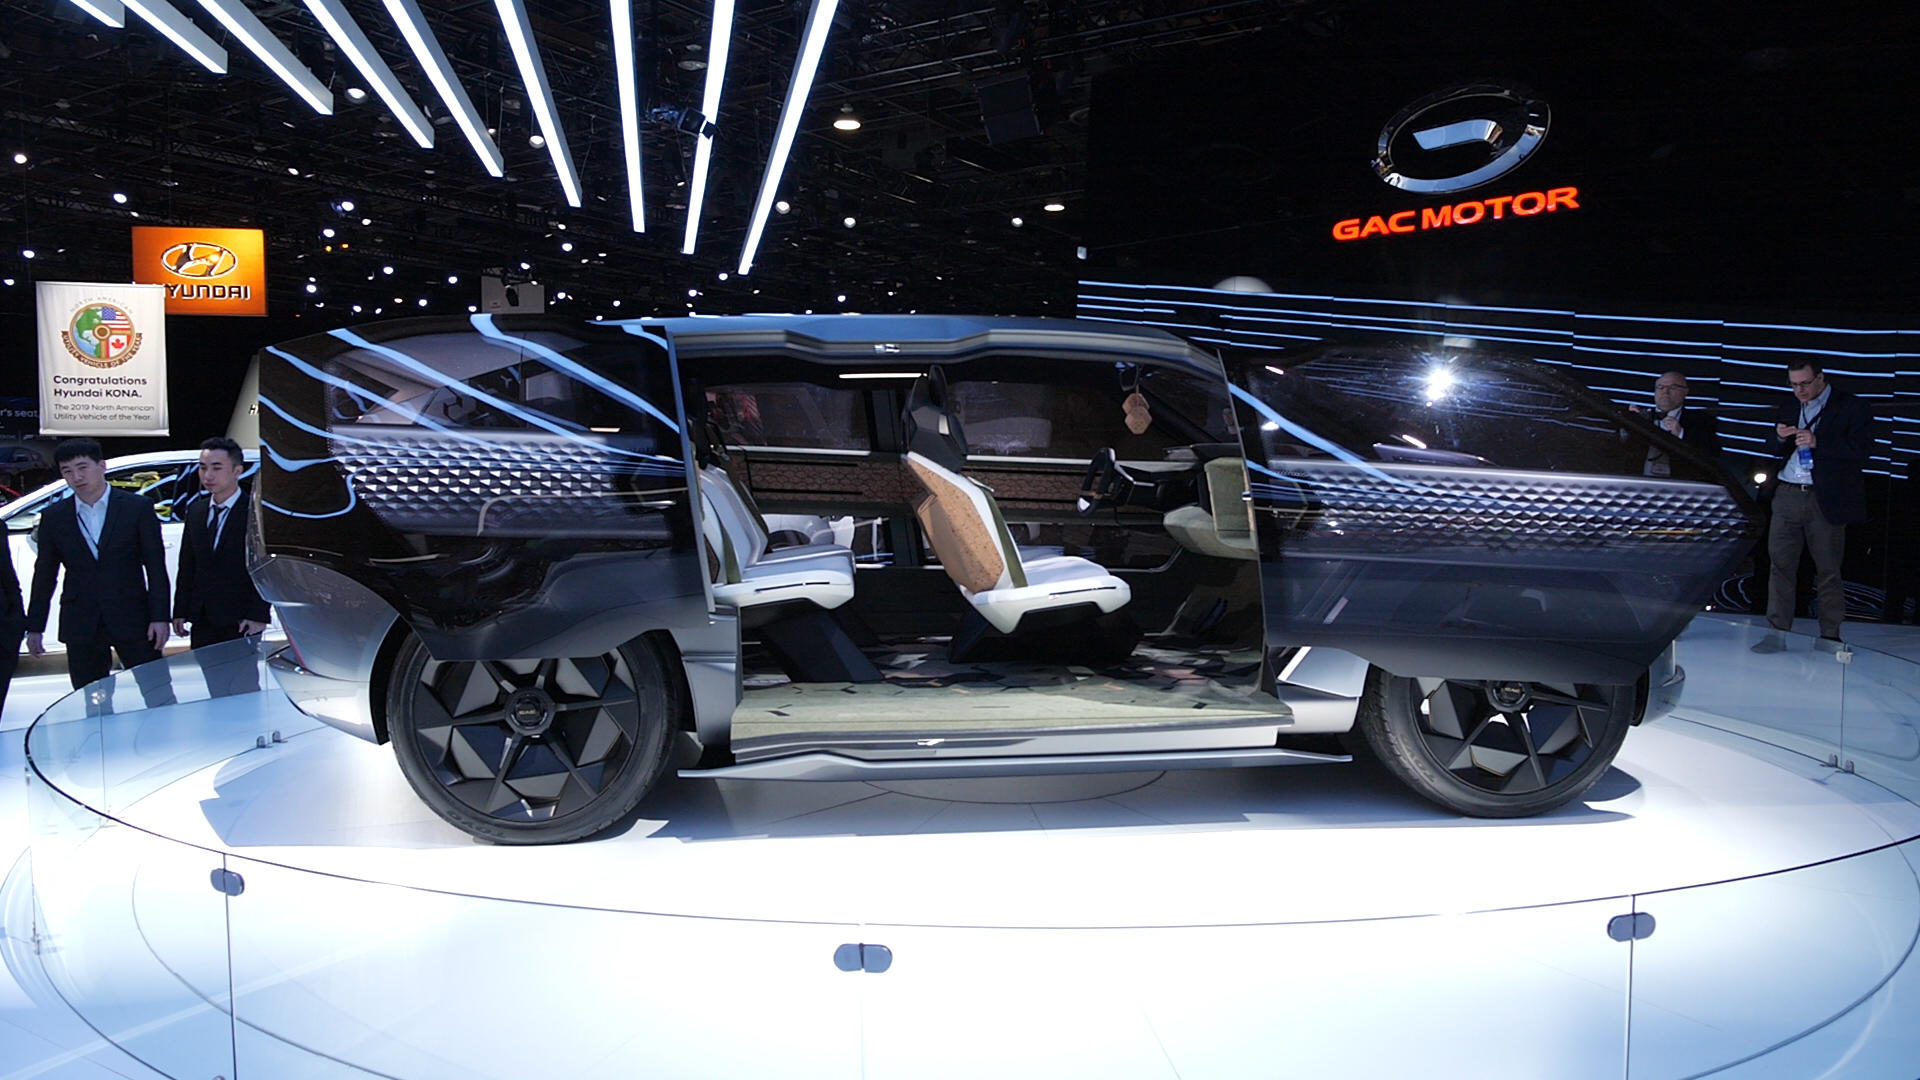 Video: Chinese automaker GAC shows off Entranze concept in Detroit